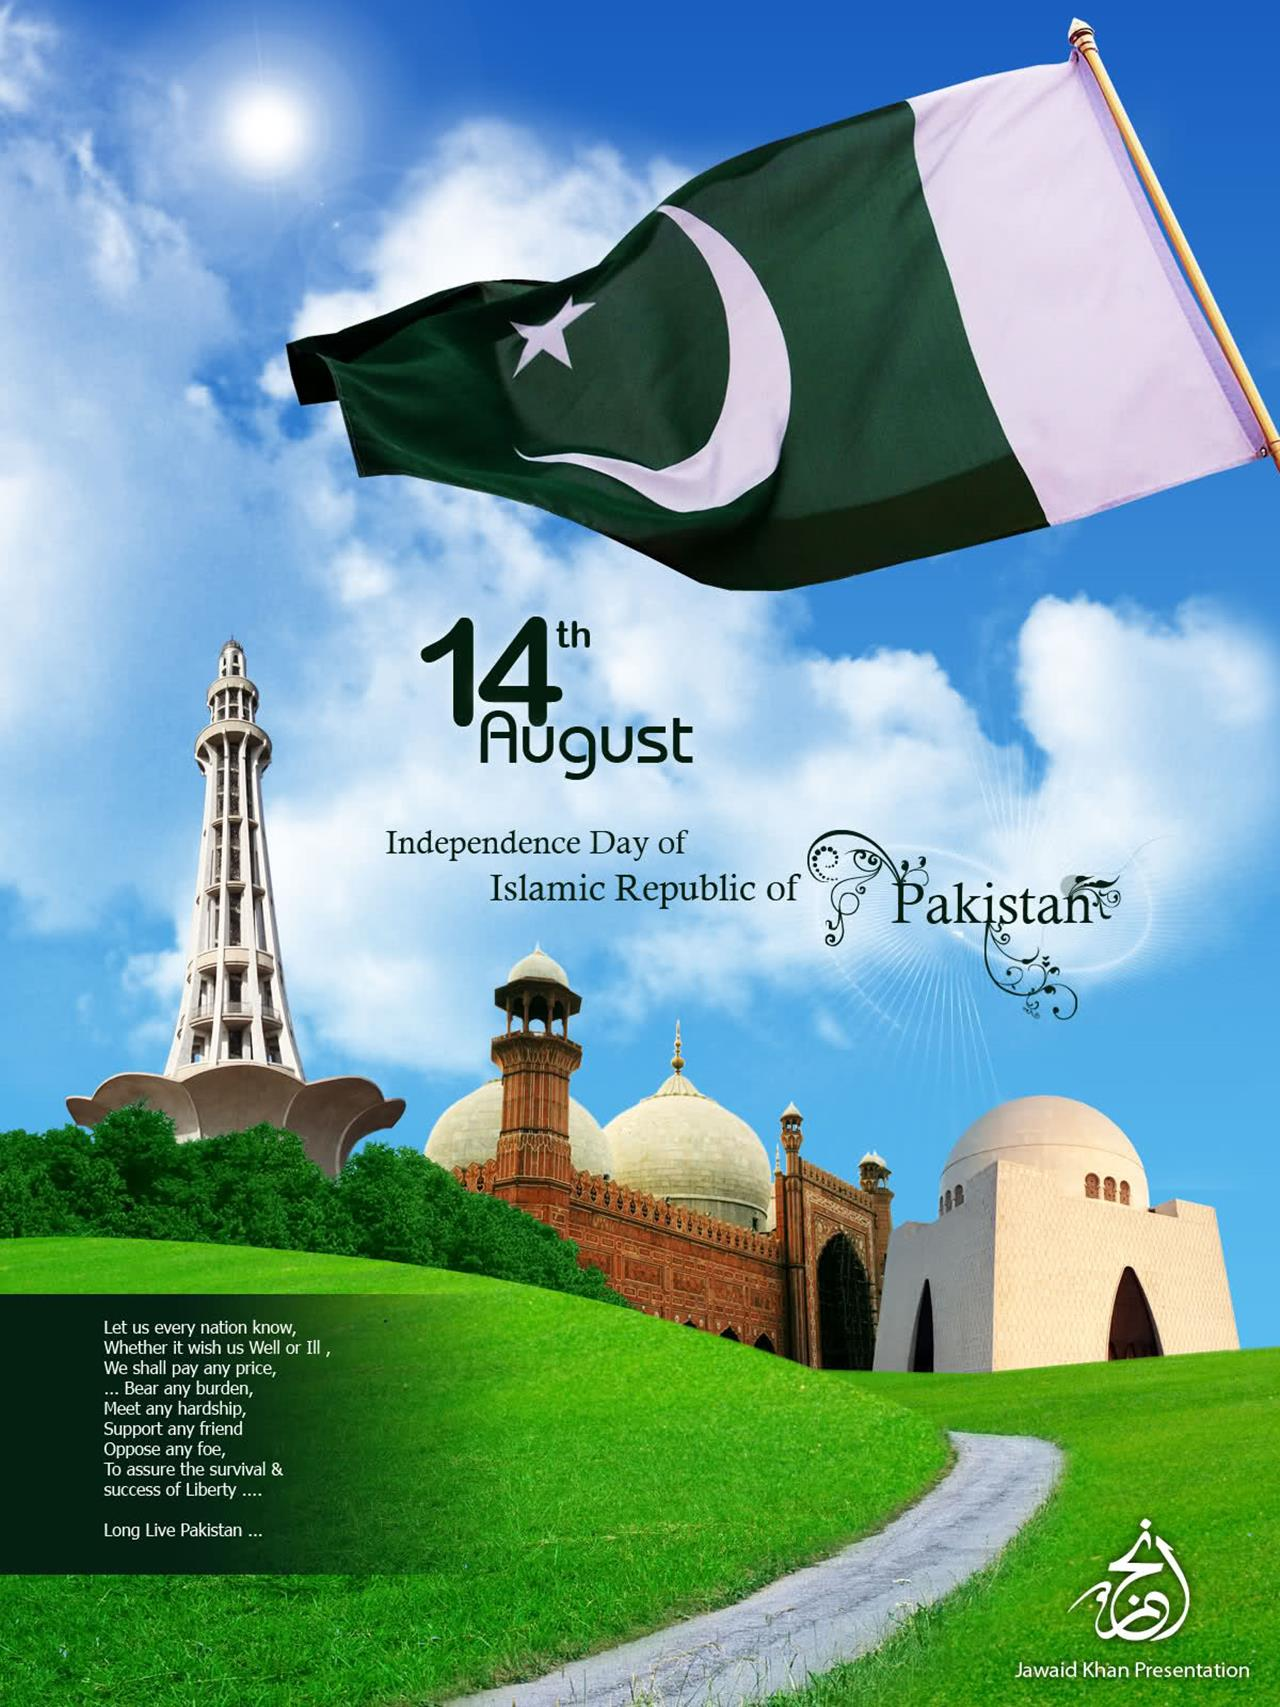 Alone But Happy Quotes Wallpapers Happy 68th Independence Day New Wallpapers 2014 Pakistan